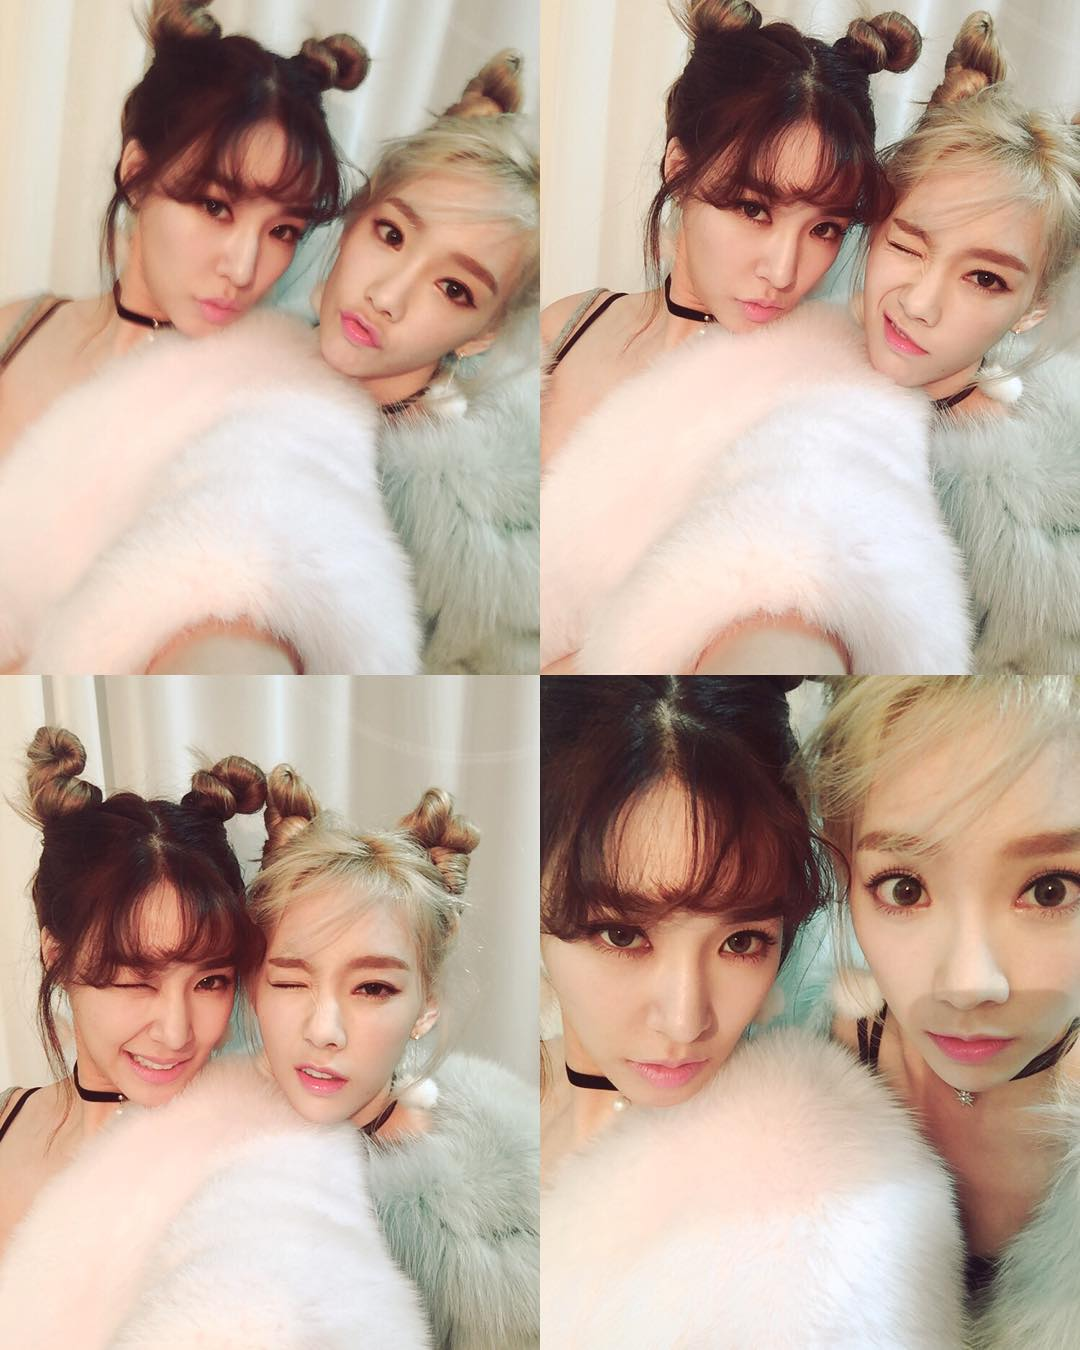 Tiffany, Taeyeon - Girls Generation